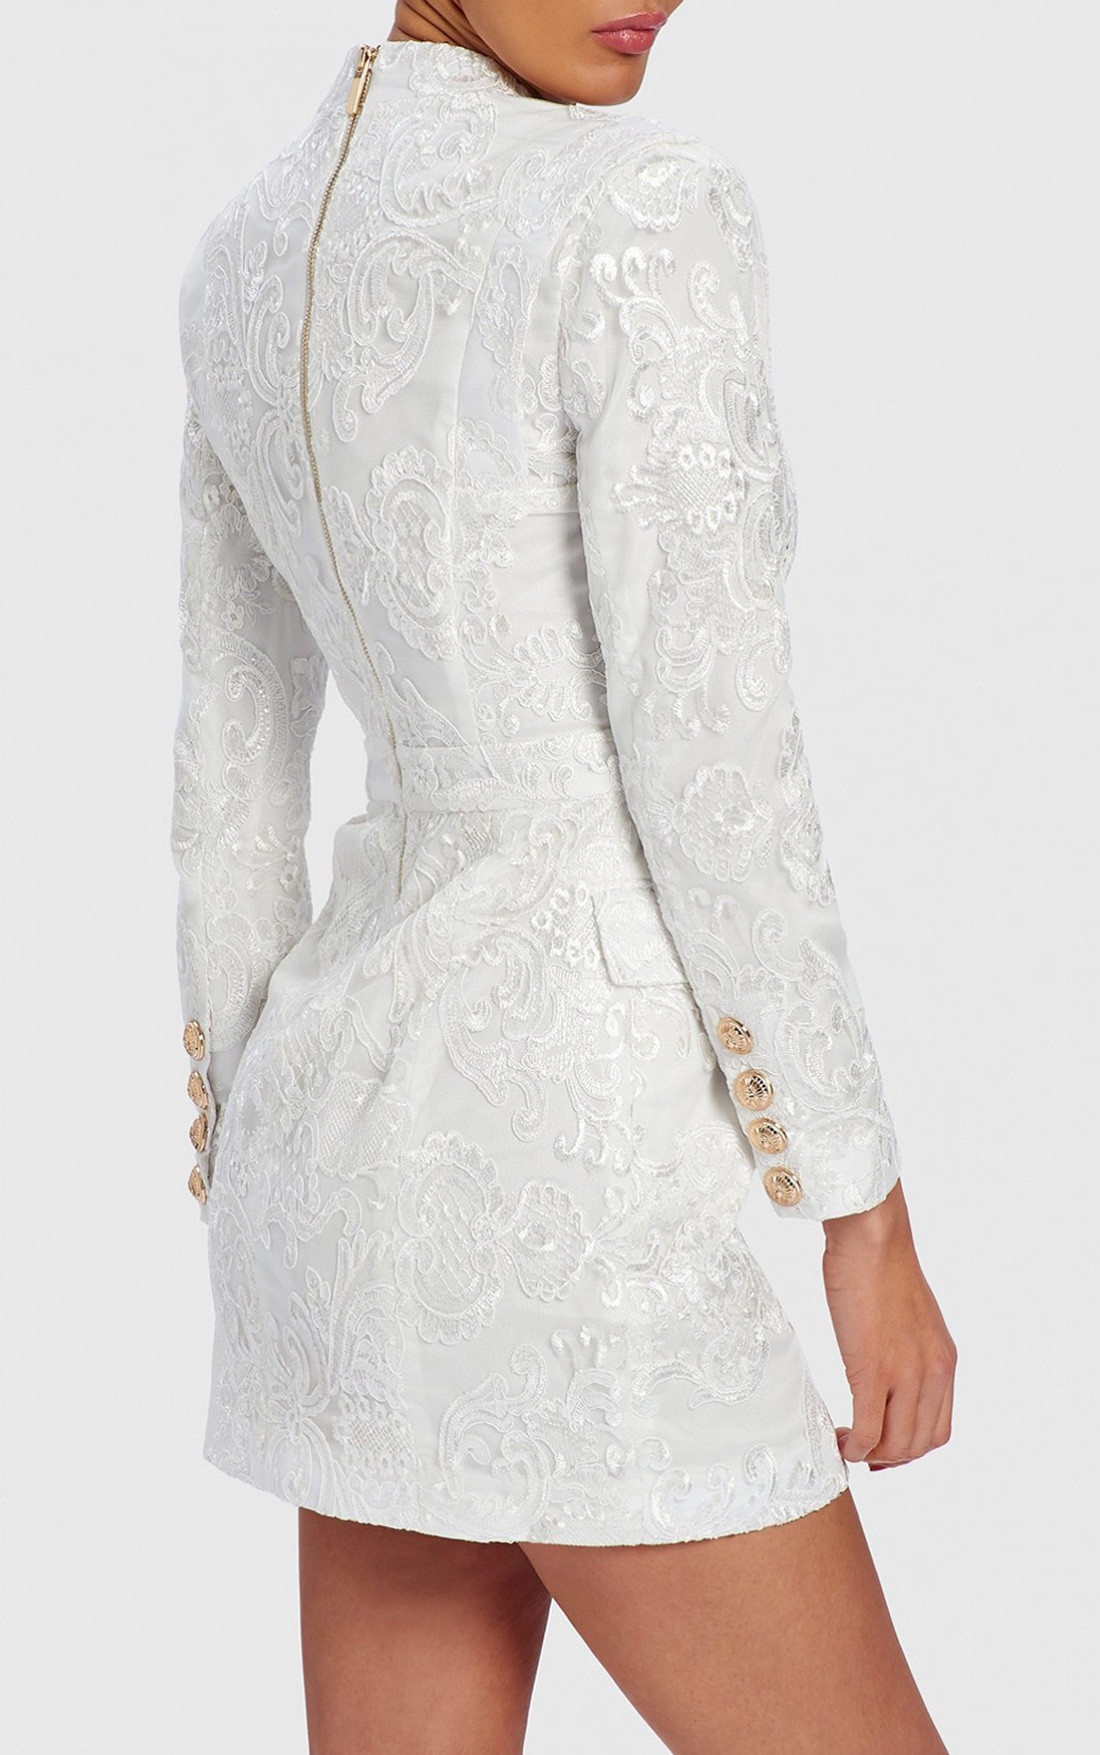 Forever Unique - Blake White Lace Blazer Dress (WF1104)